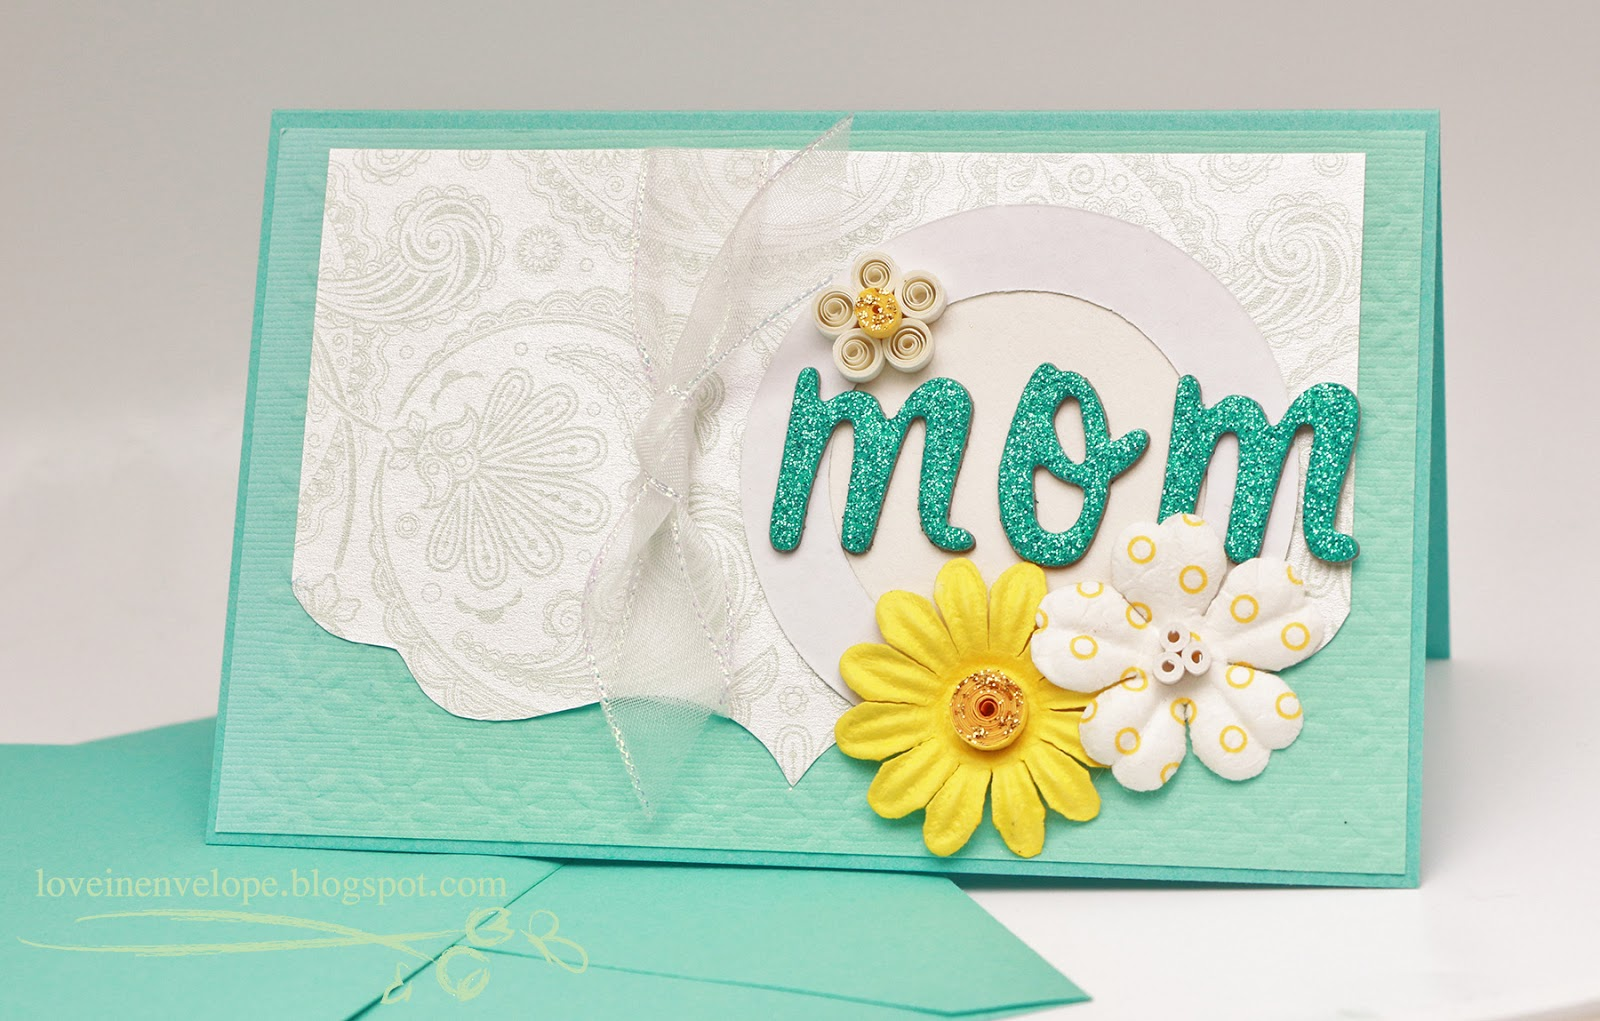 Love In Envelope Tiffany Blue Quilling Handmade Card For Mom